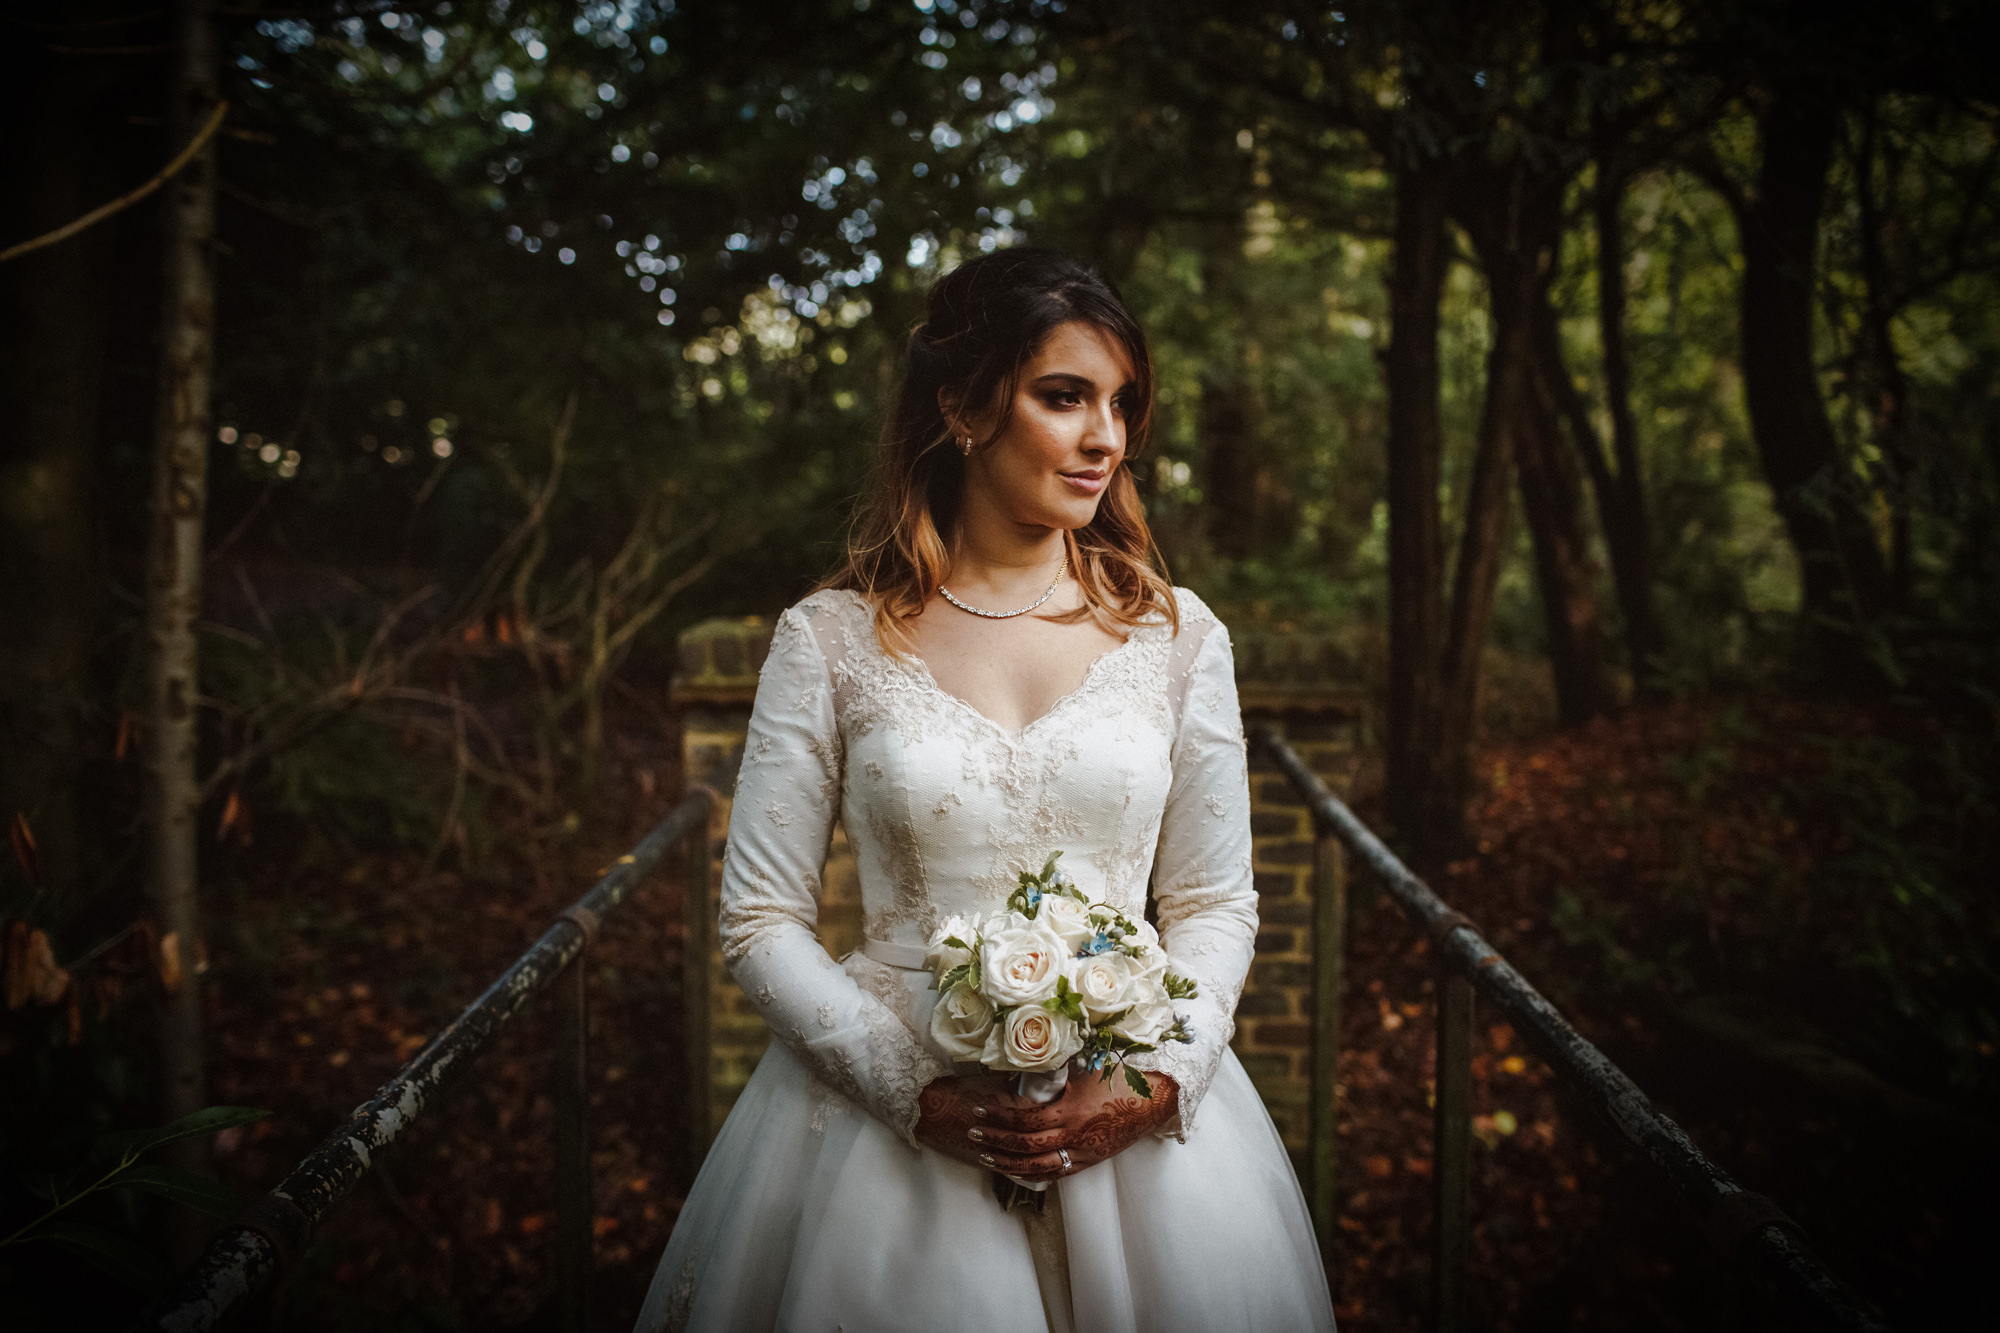 Bride with bouquet in rustic setting - photo by Tomas Juskaitis Photography